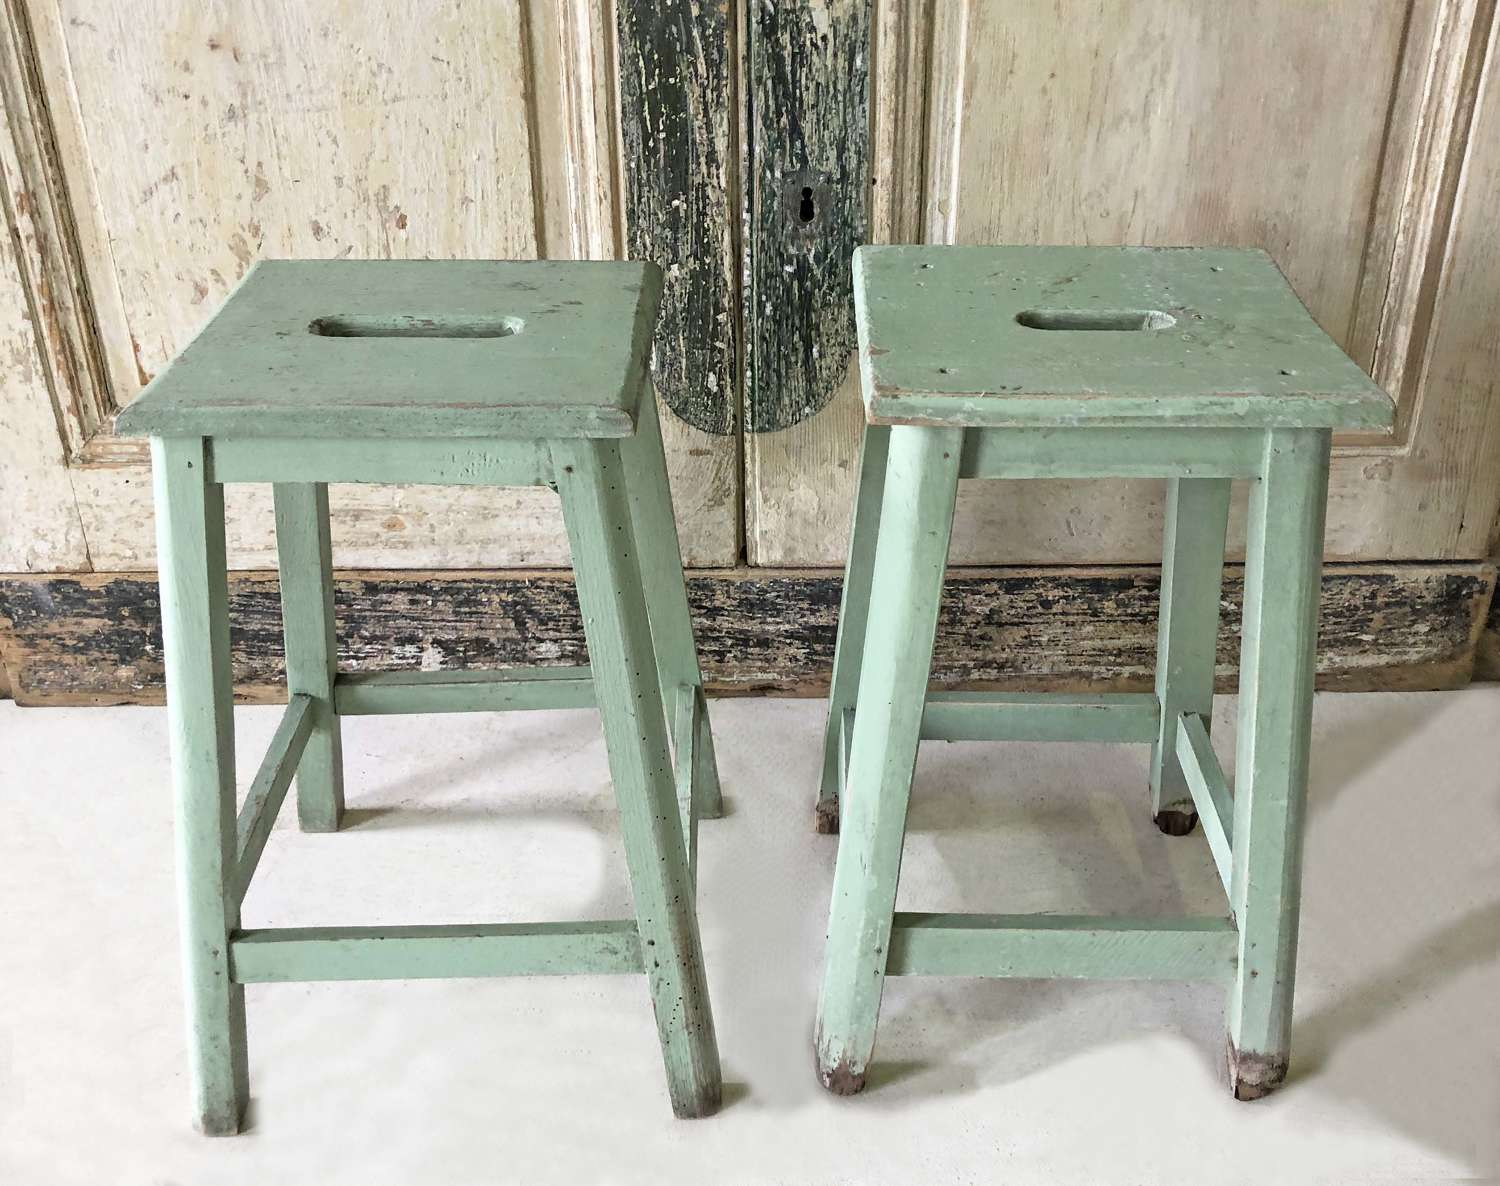 Pair of French painted green Stools - Circa 1920